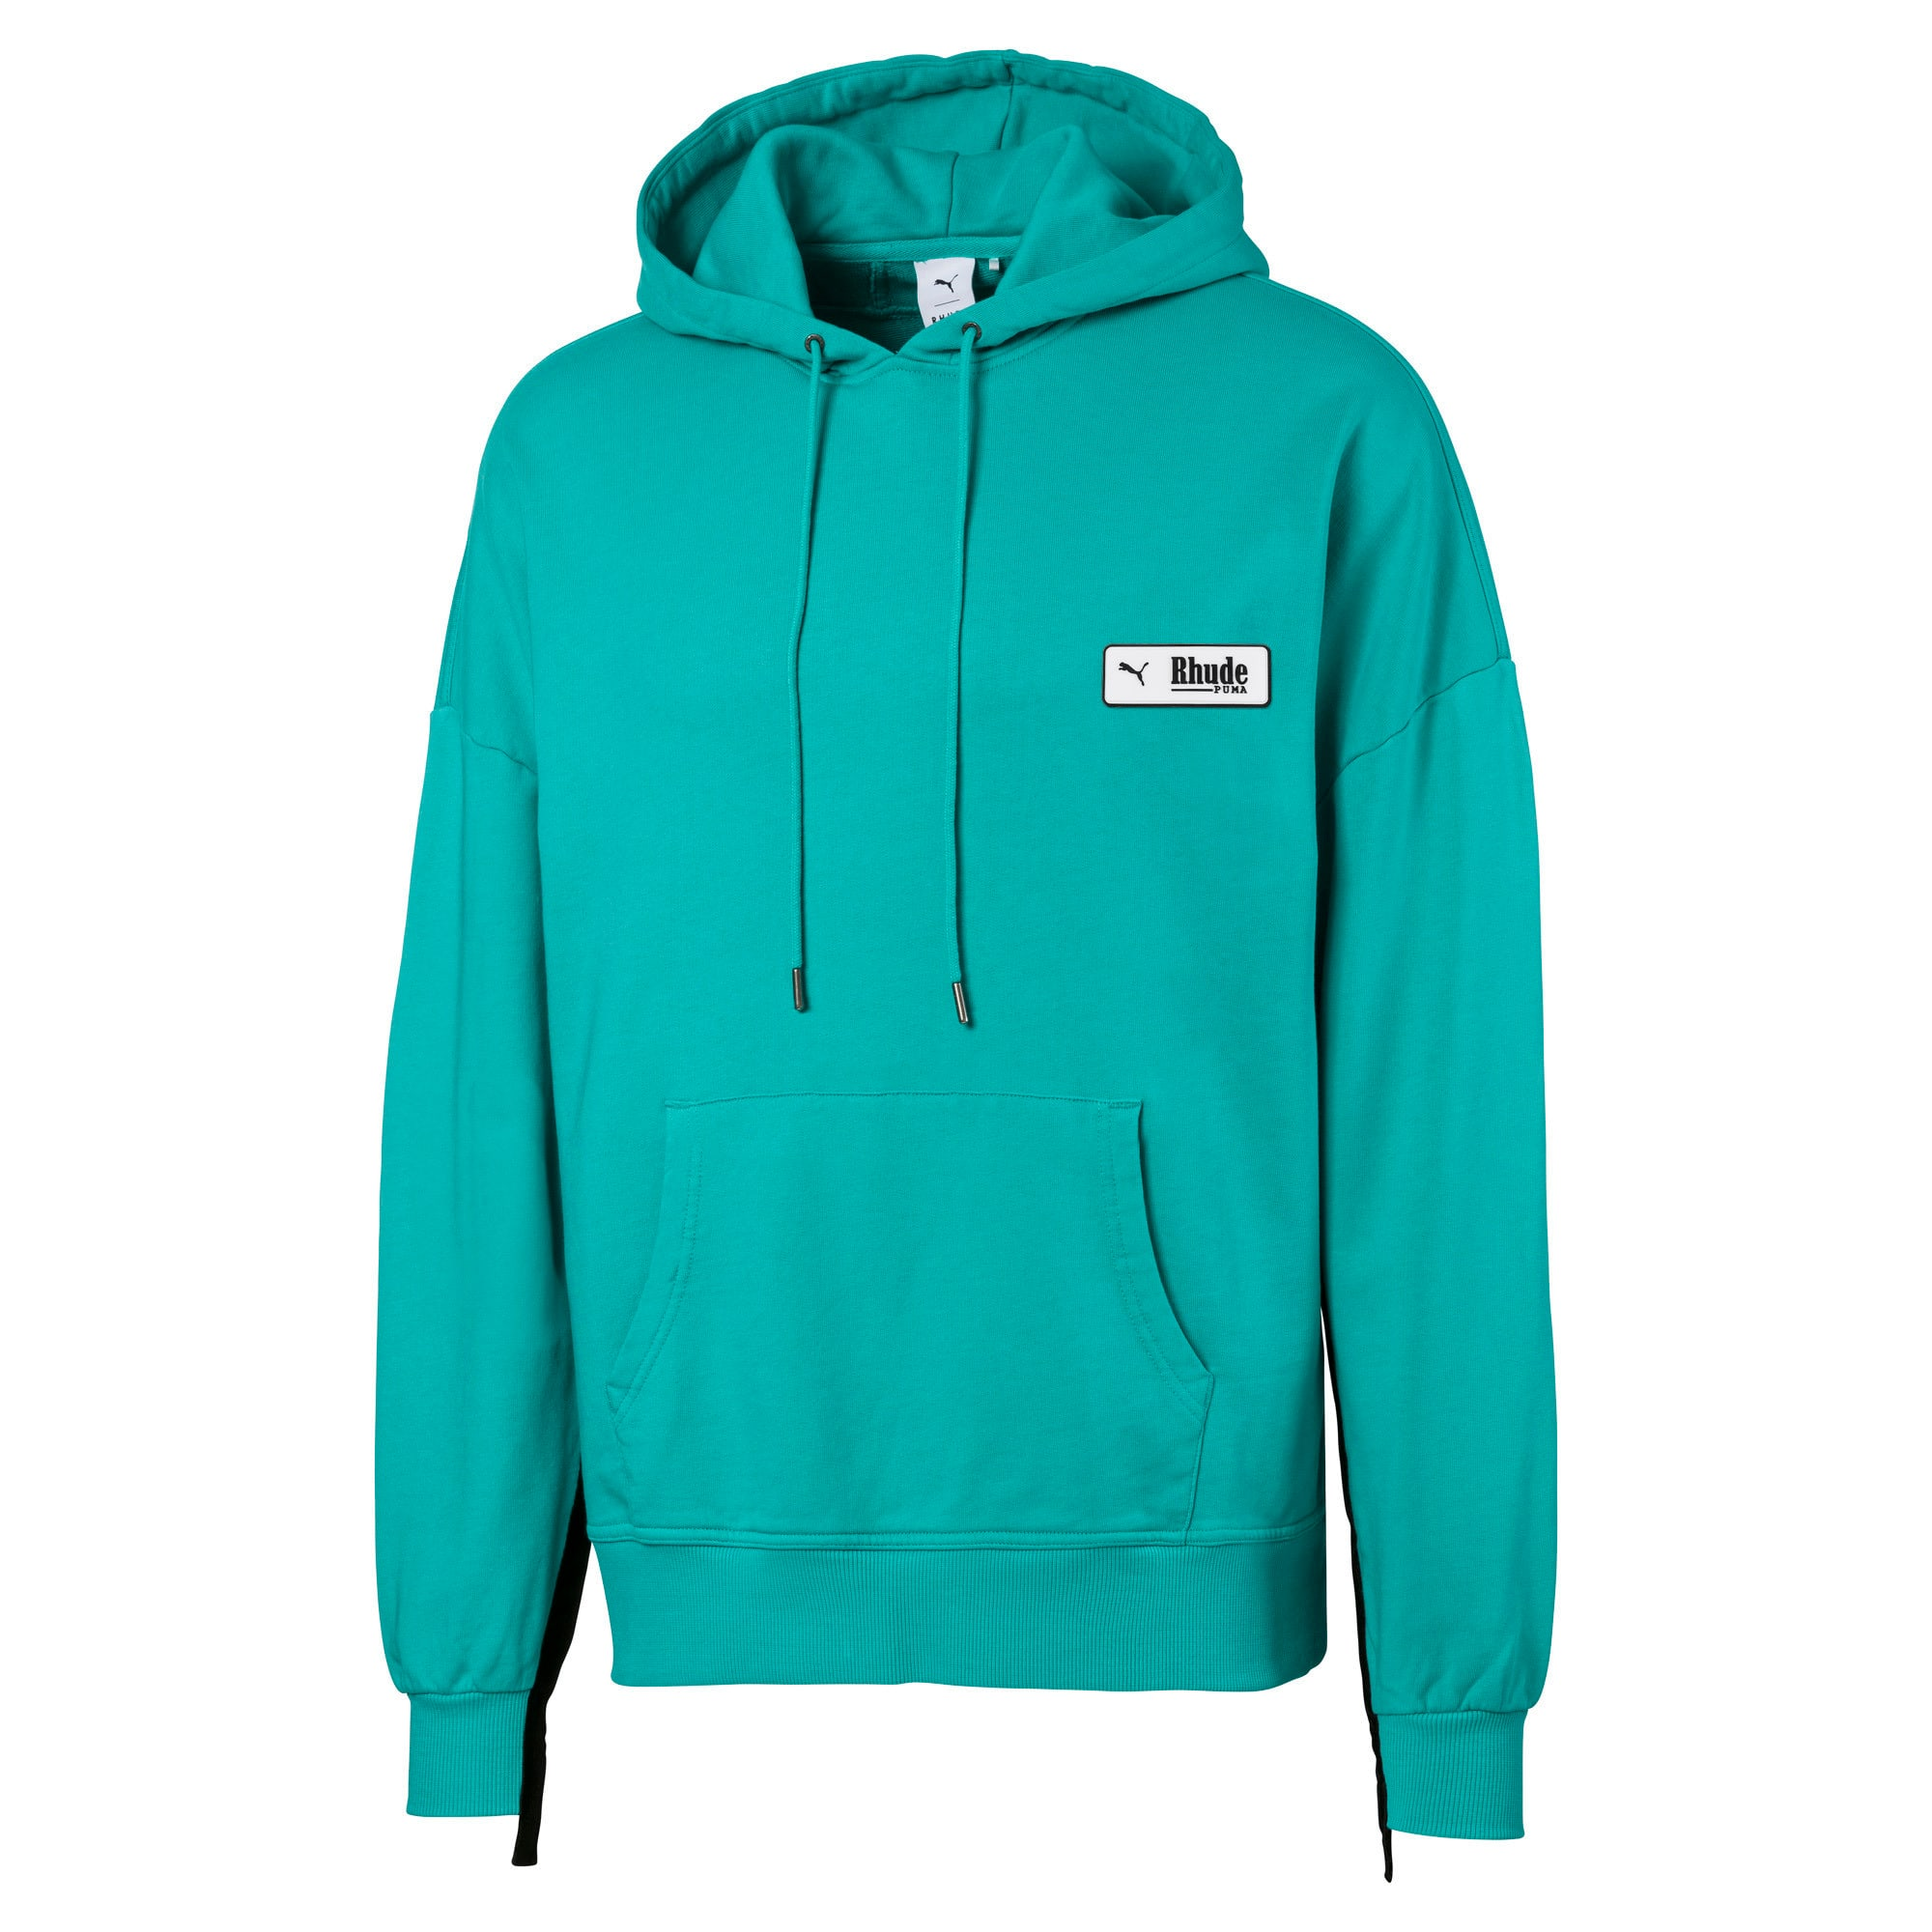 Thumbnail 2 of PUMA x RHUDE Men's Hoodie, Blue Turquoise, medium